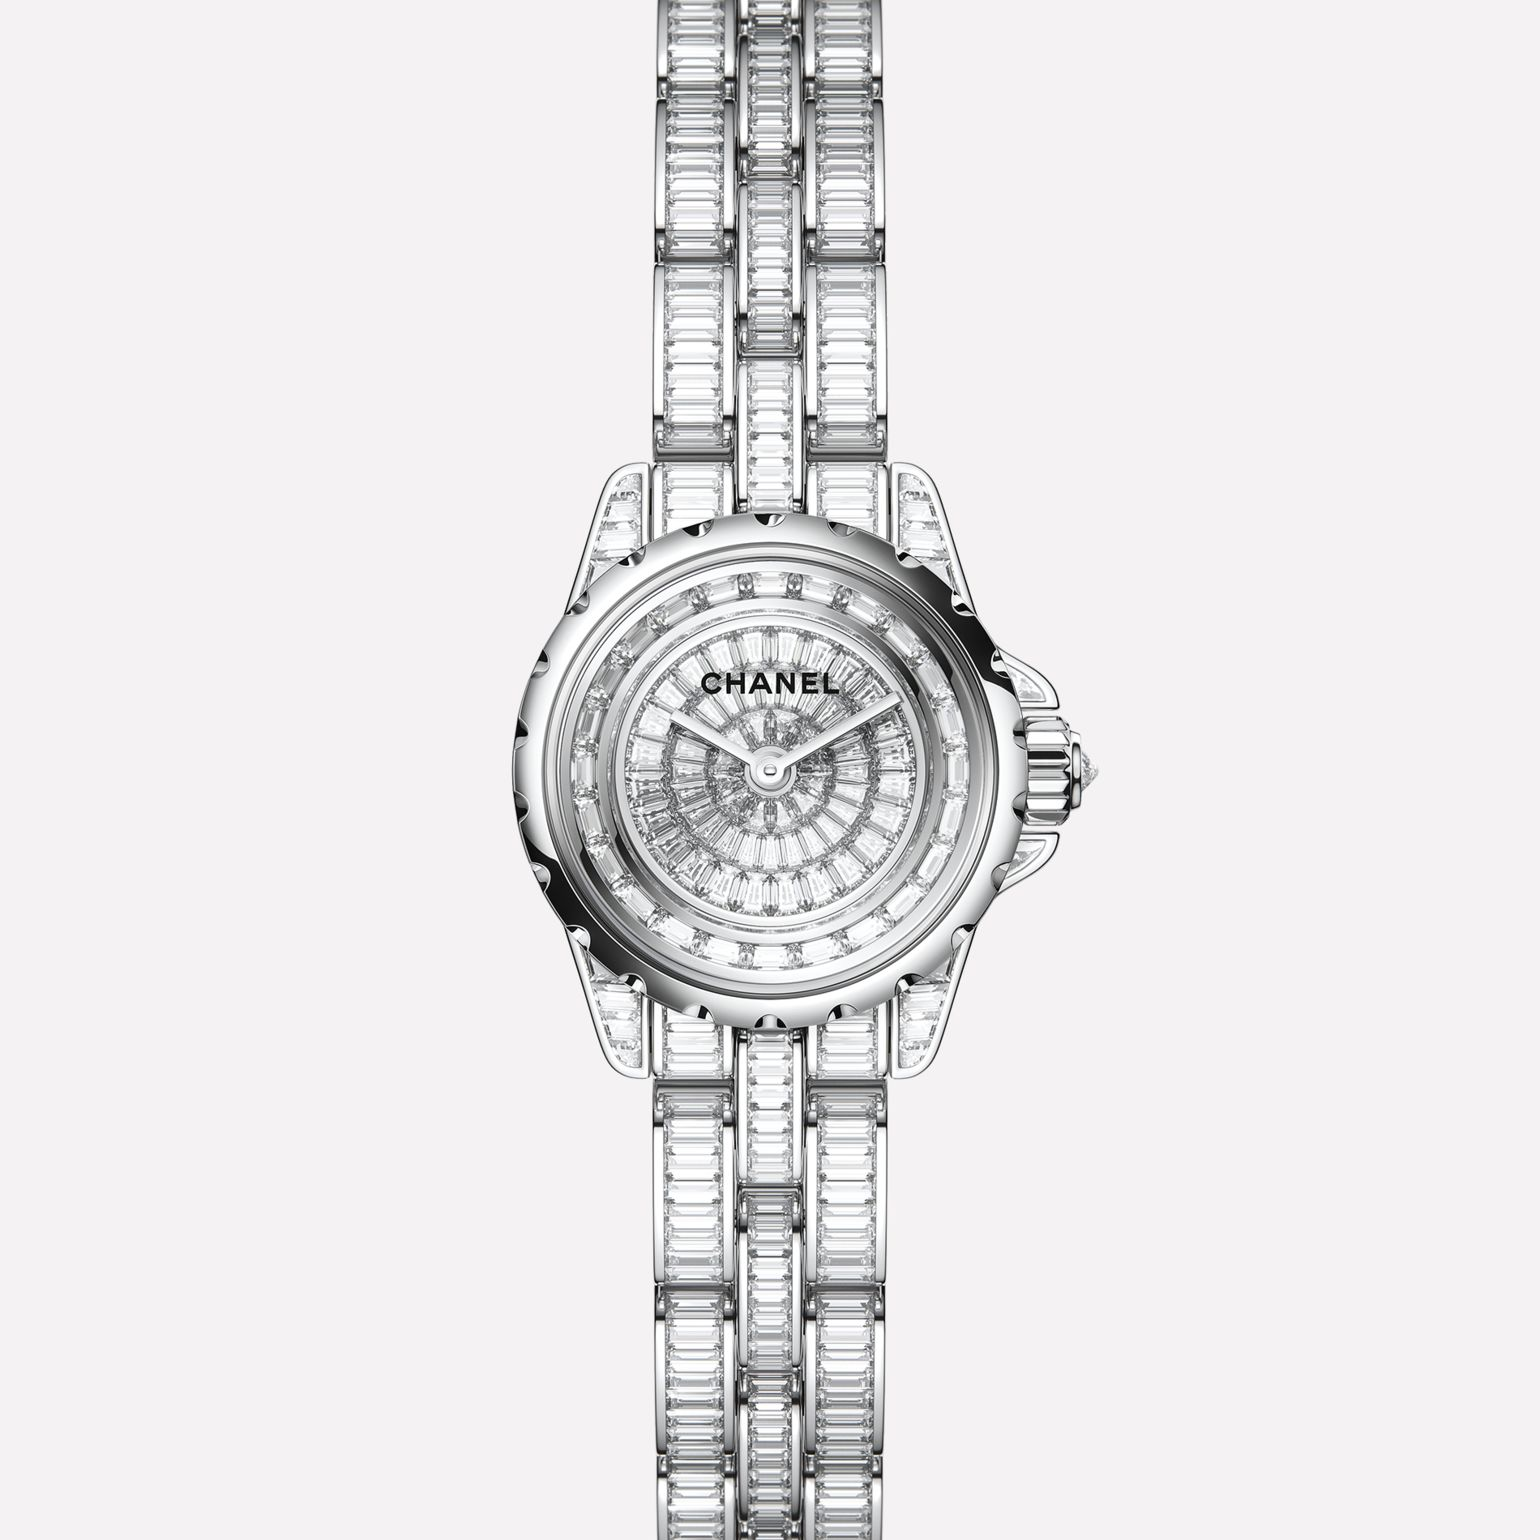 J12·XS High Jewellery Watch White gold, case, dial, flange and bracelet set with baguette-cut diamonds